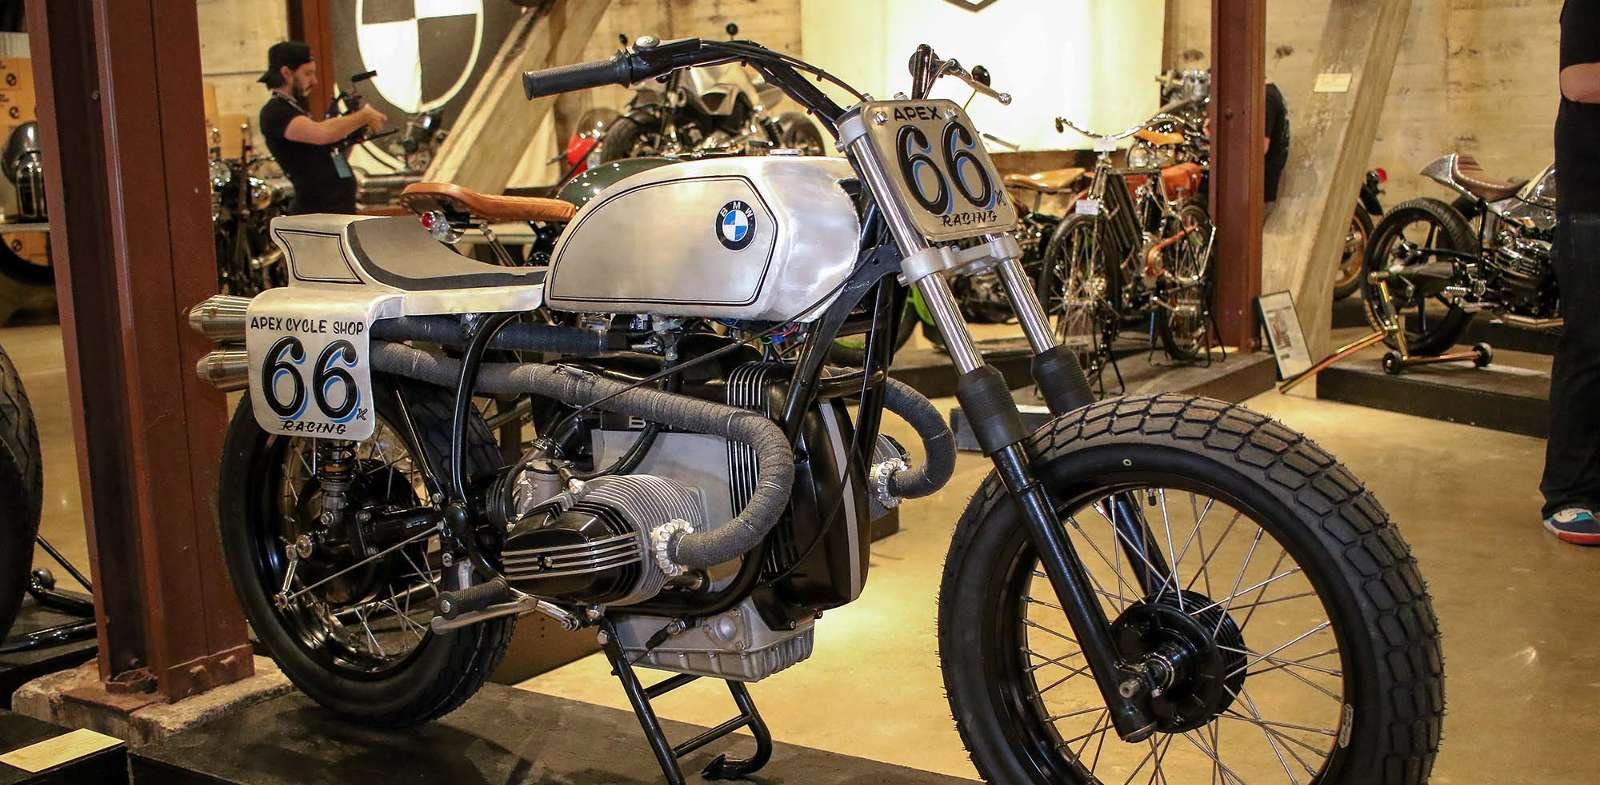 Restored BMW racing bike